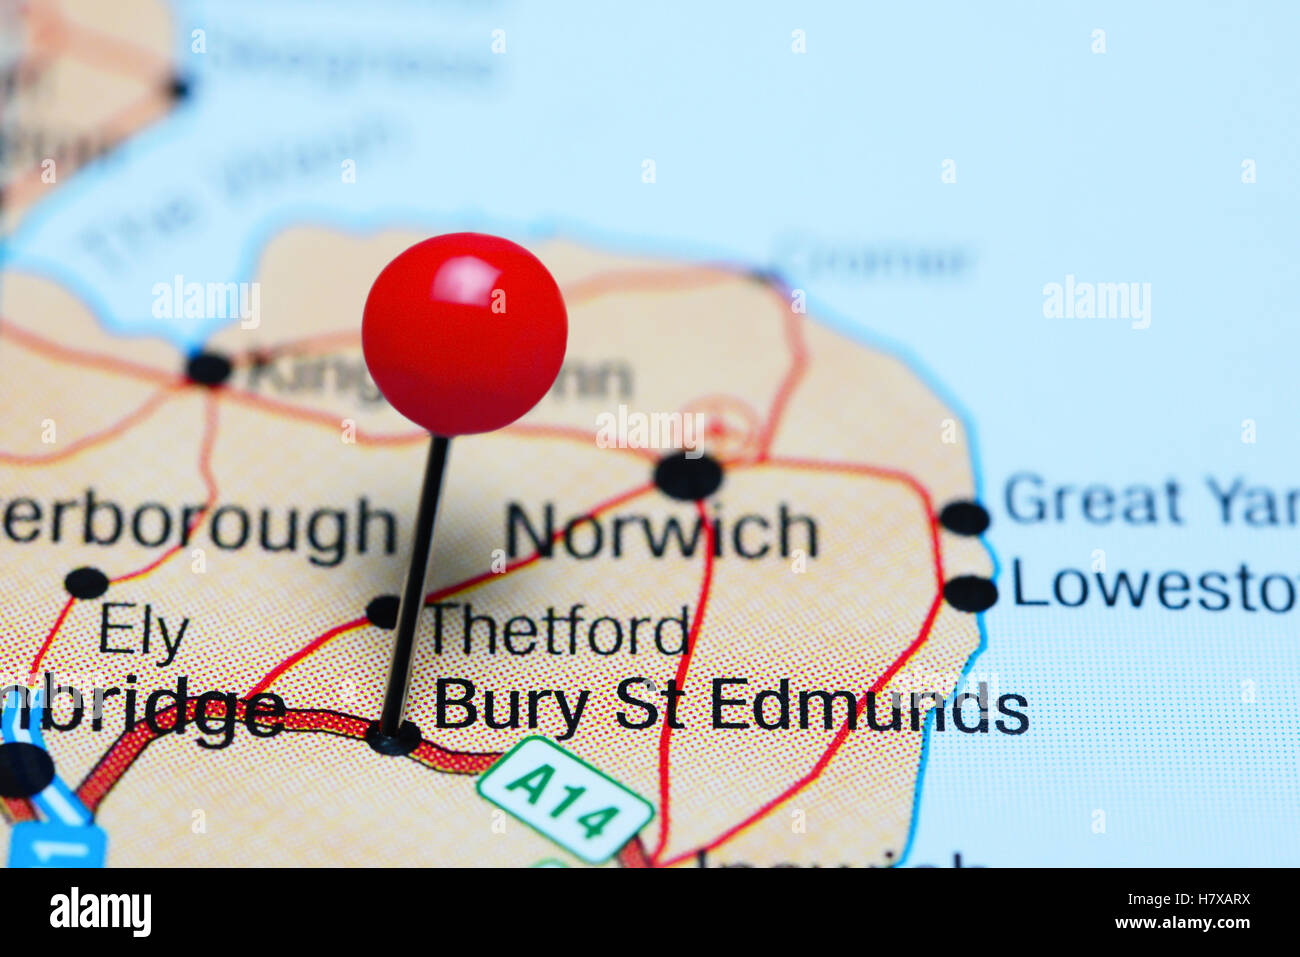 Bury St Edmunds pinned on a map of UK Stock Photo Royalty Free